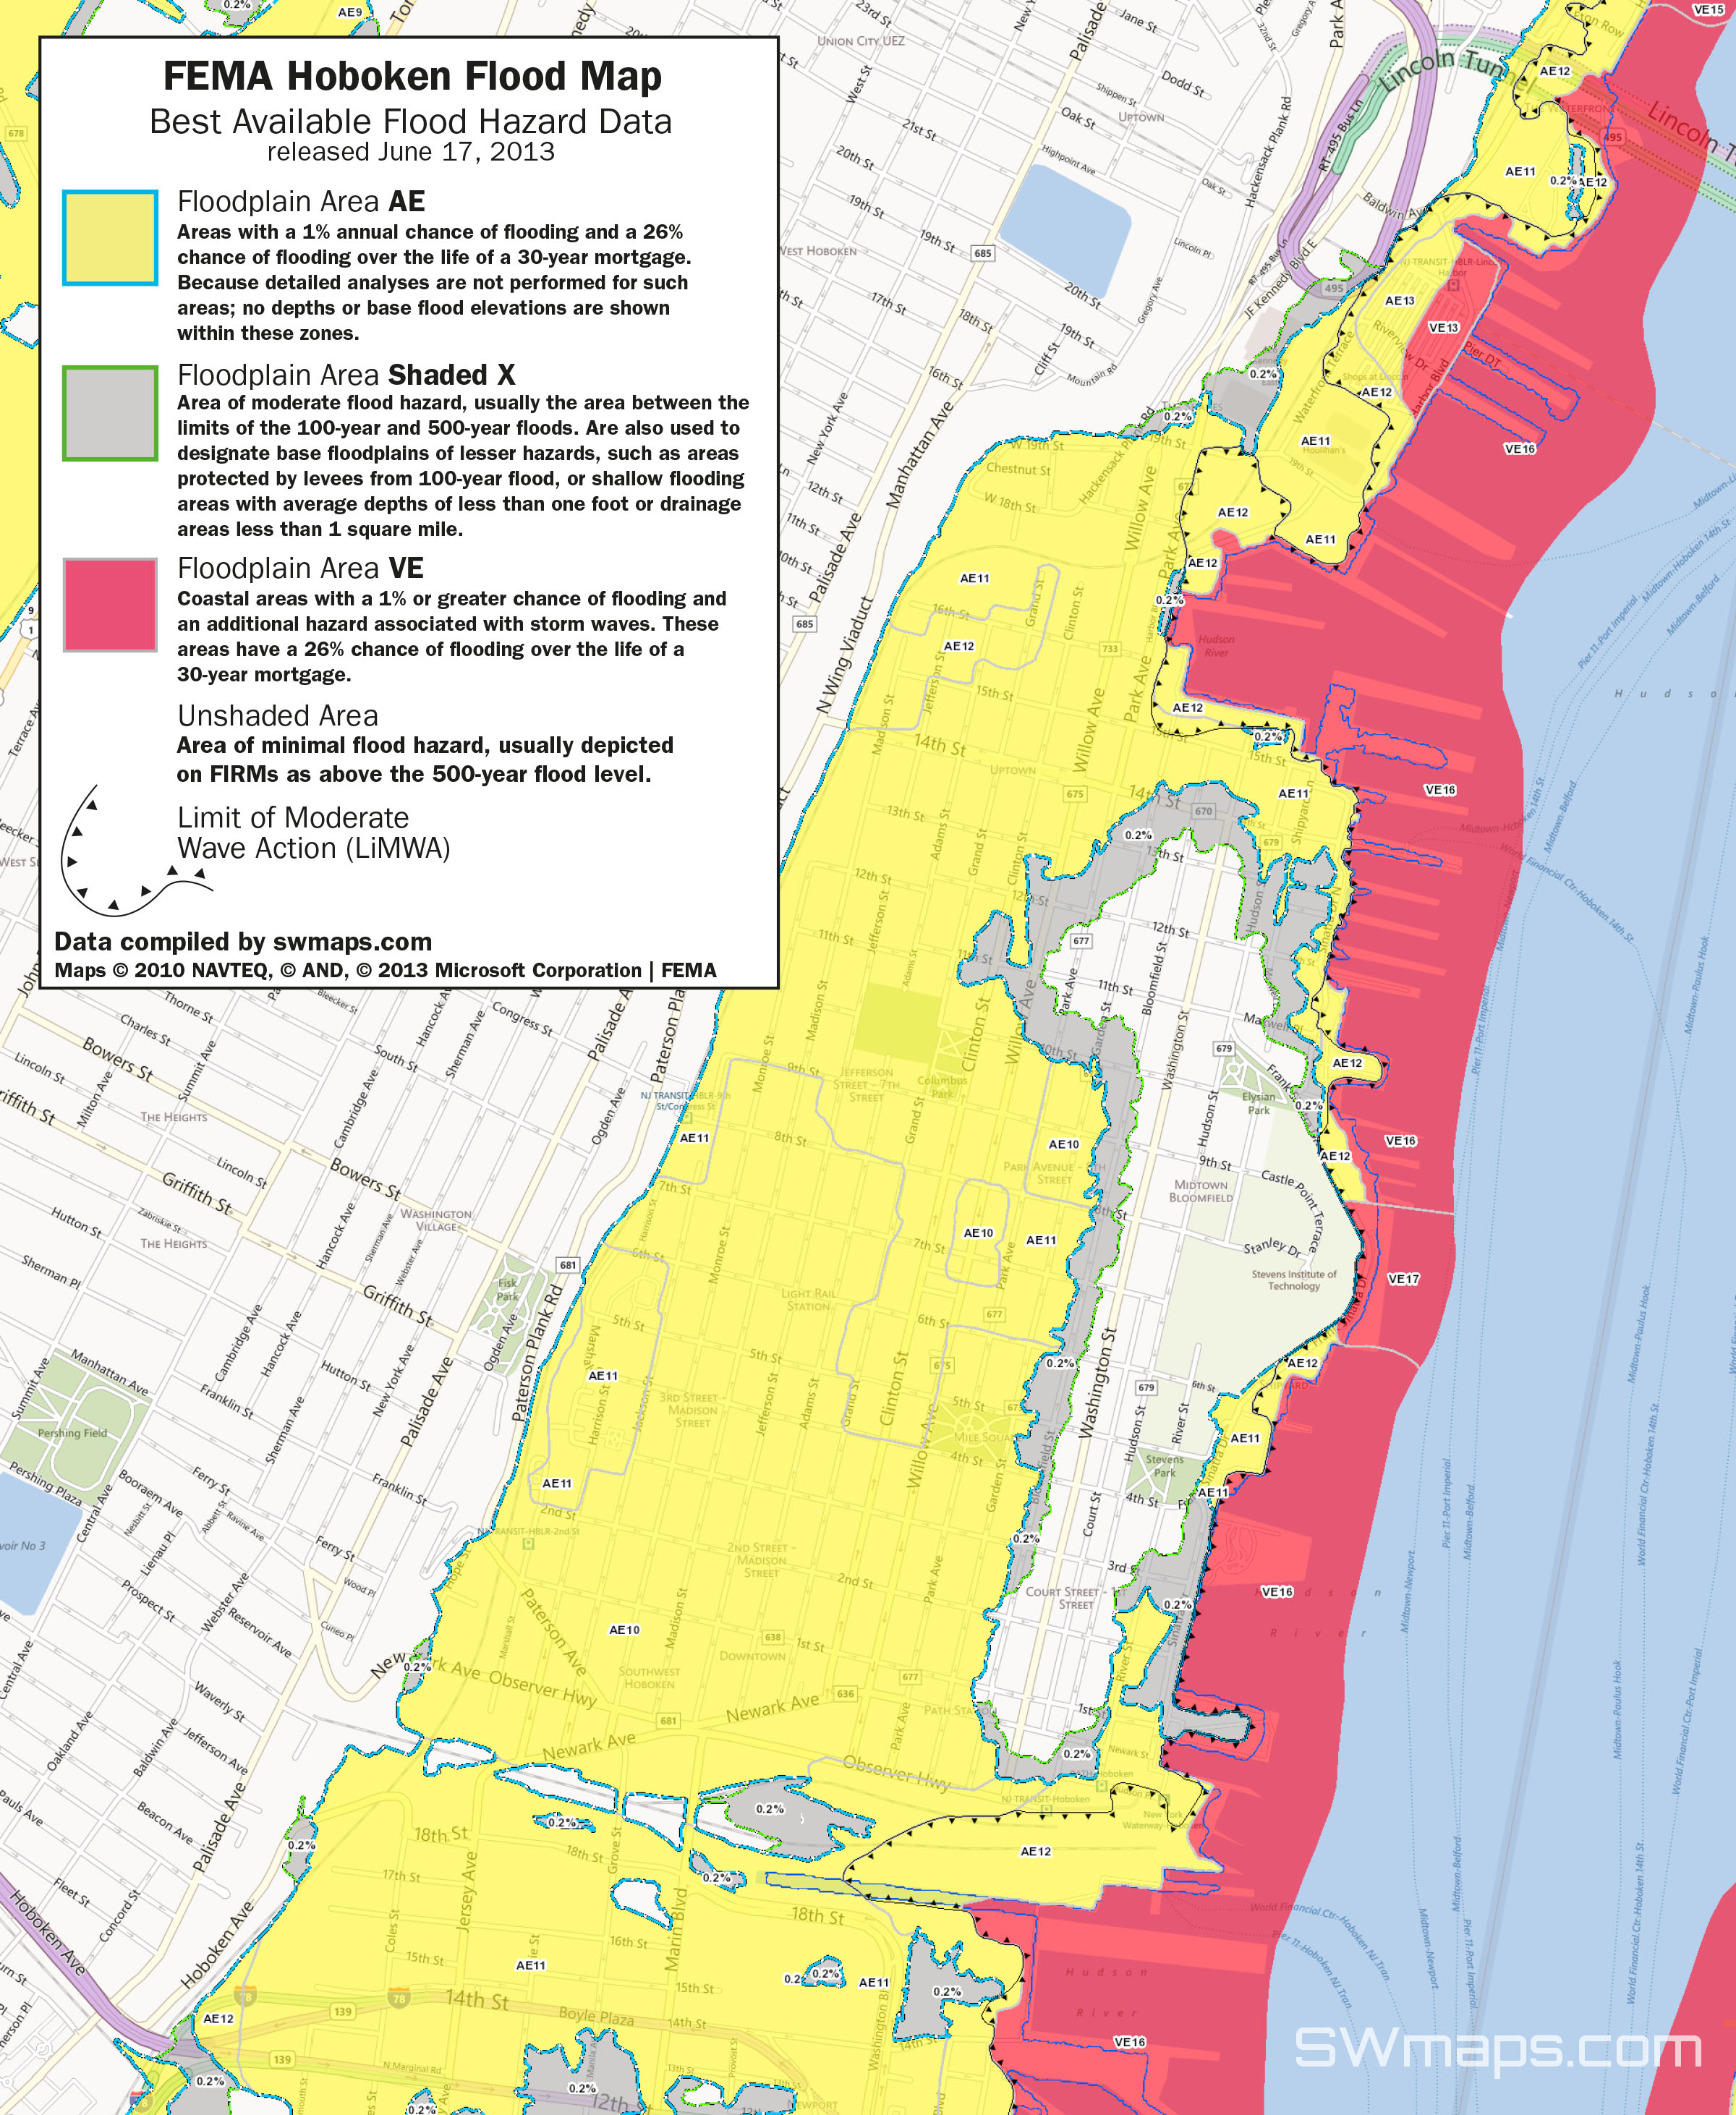 New Hoboken Flood Map: Fema Best Available Flood Hazard Data - Florida Keys Flood Zone Map